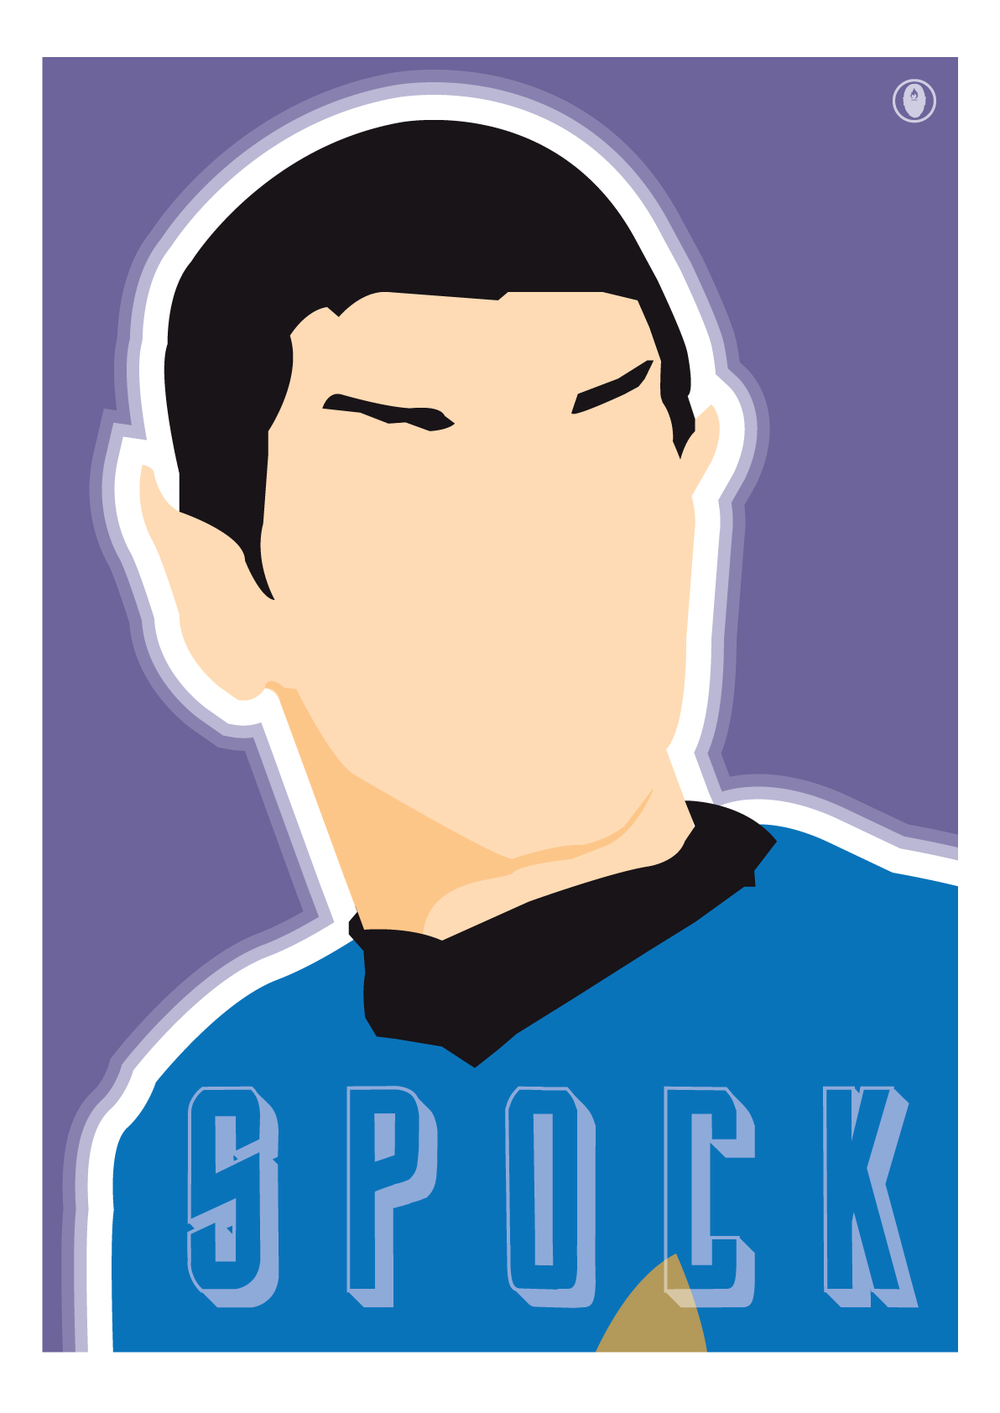 Image of 'MR. SPOCK'